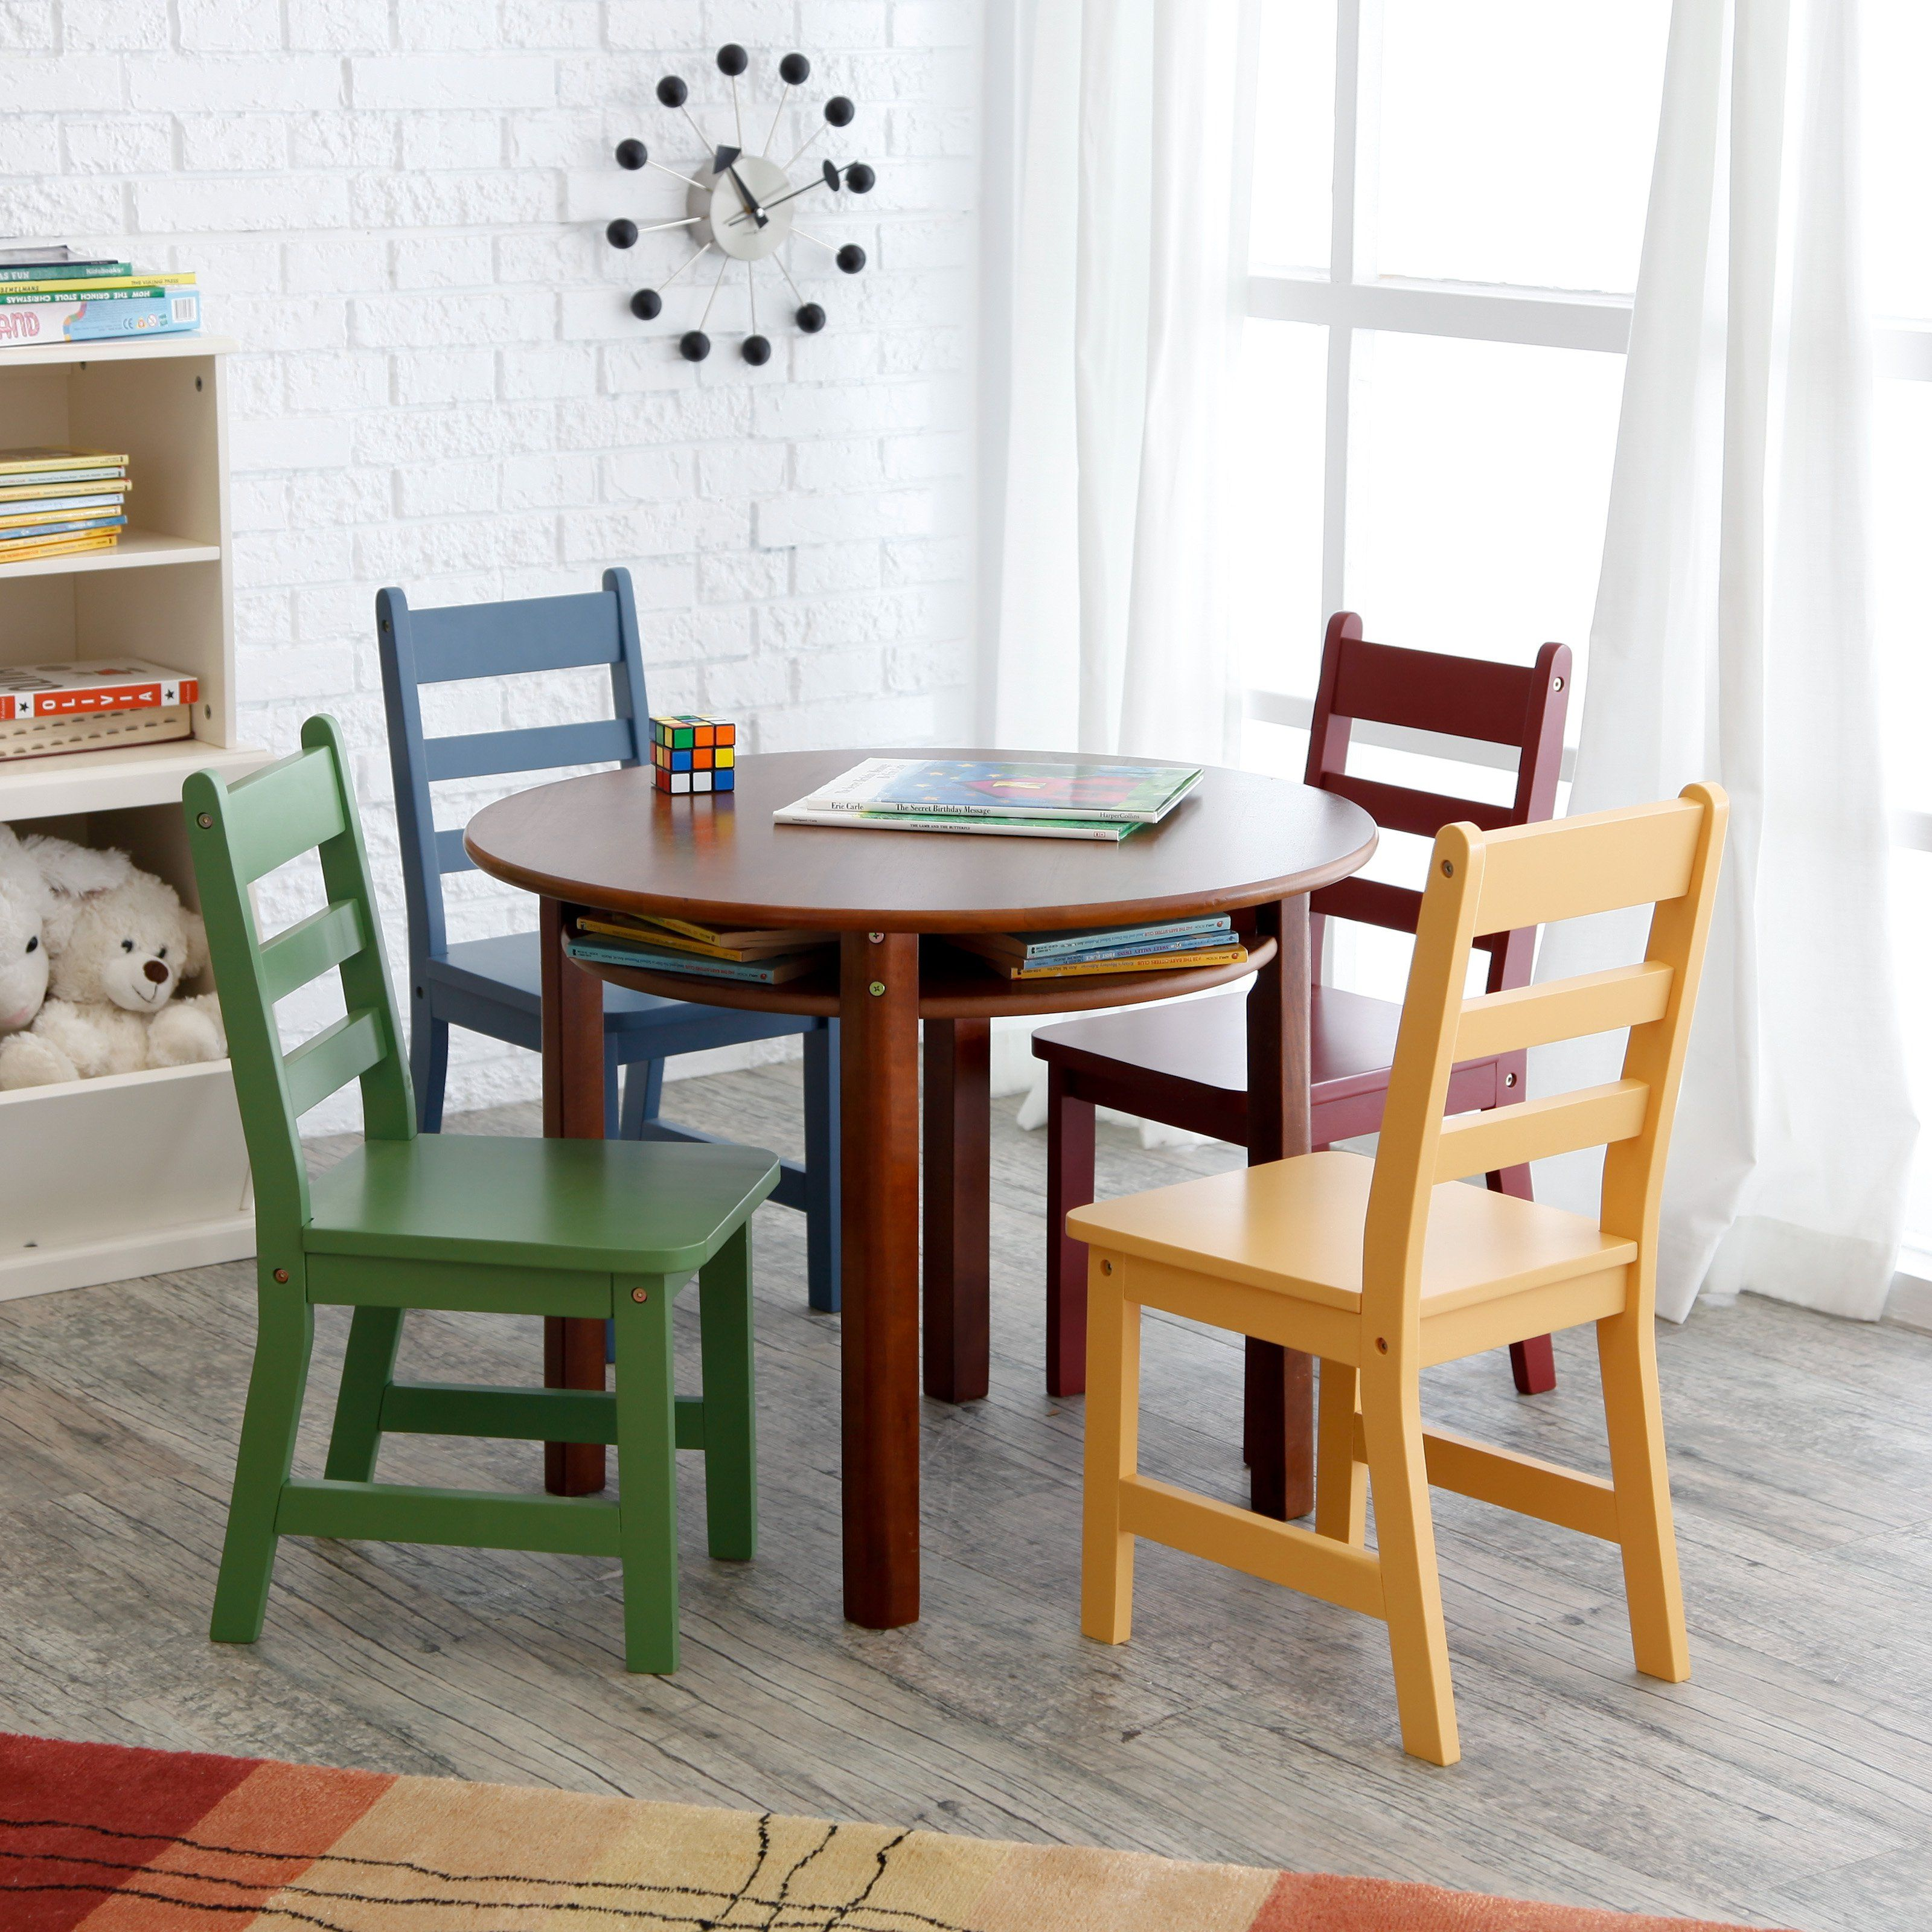 Have To Have It Lipper Childrens Walnut Round Table And 4 Chairs 174 99 Hayneedle Round Table And Chairs Wooden Table And Chairs Childrens Table